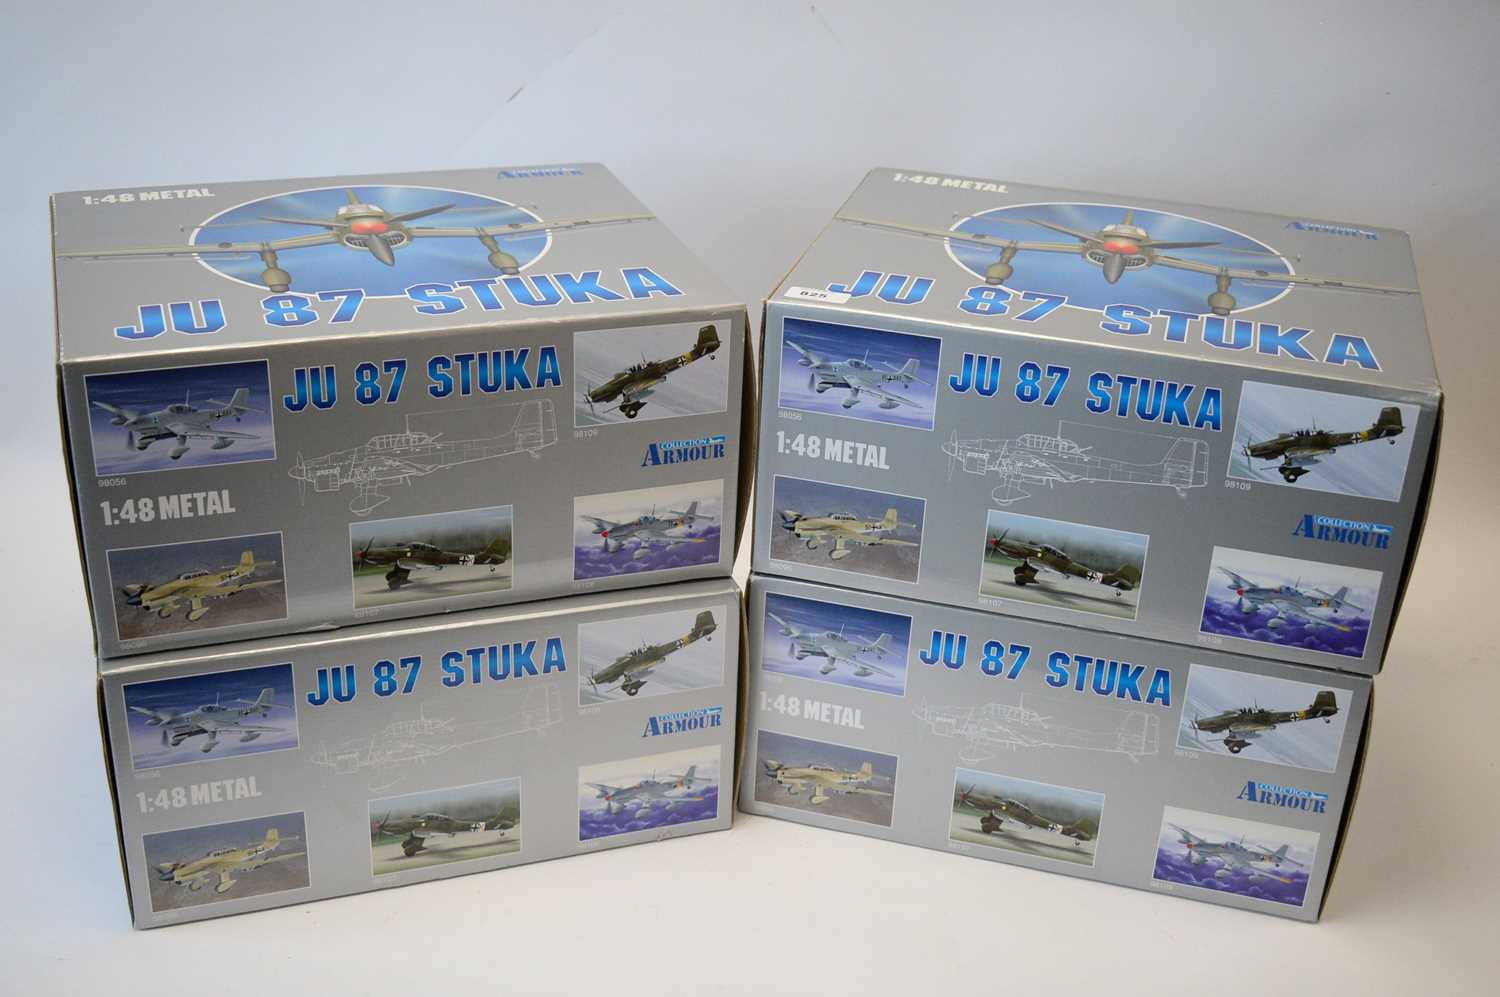 Lot 825 - Collection Armour 1:48 Scale metal diecast aeroplanes - JU87 Stuka.